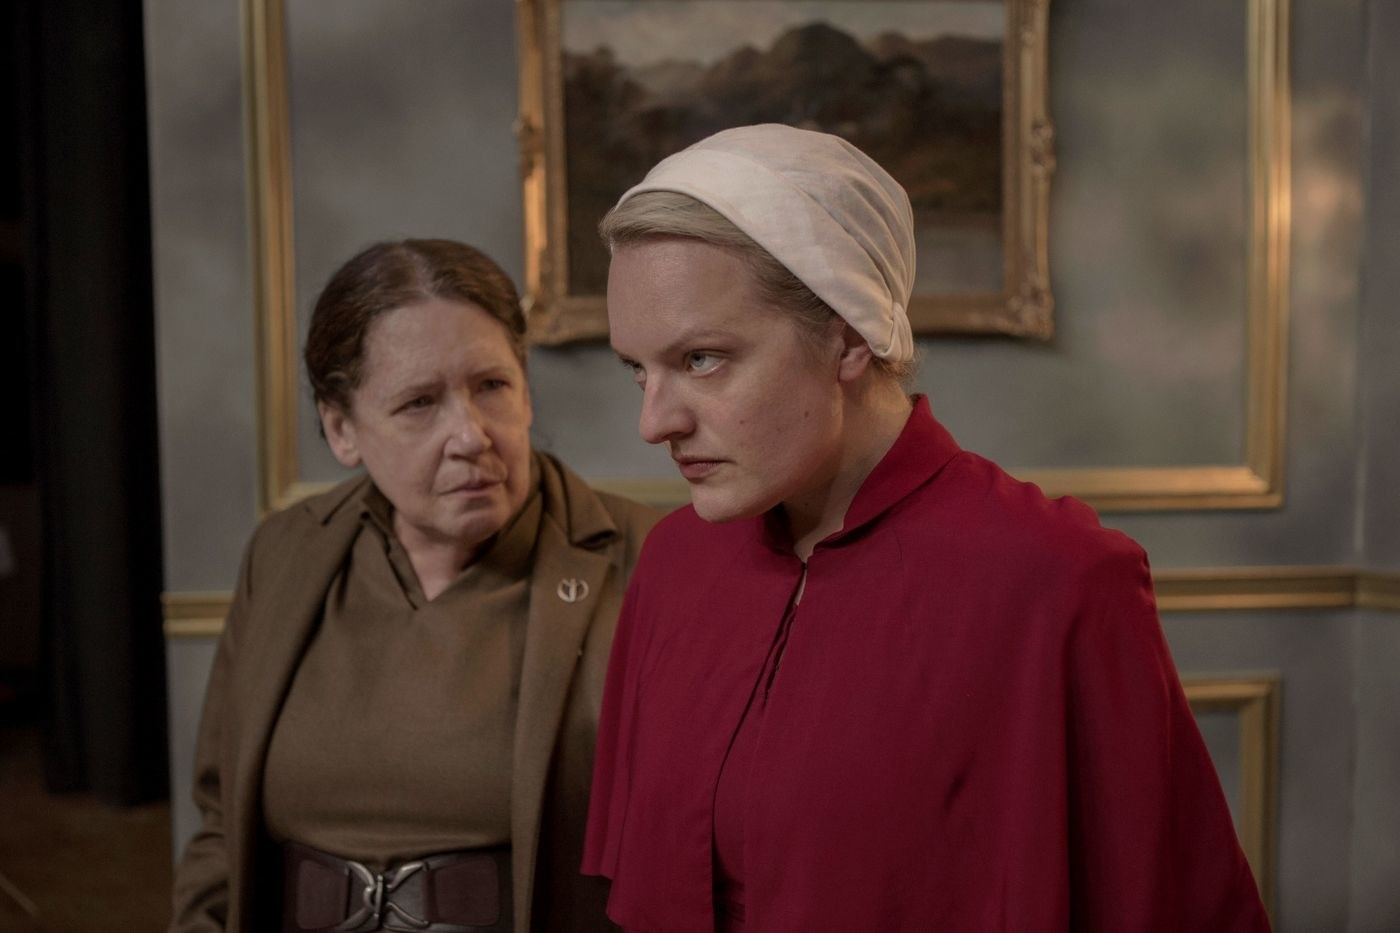 Still of Offred defying Aunt Lydia's orders